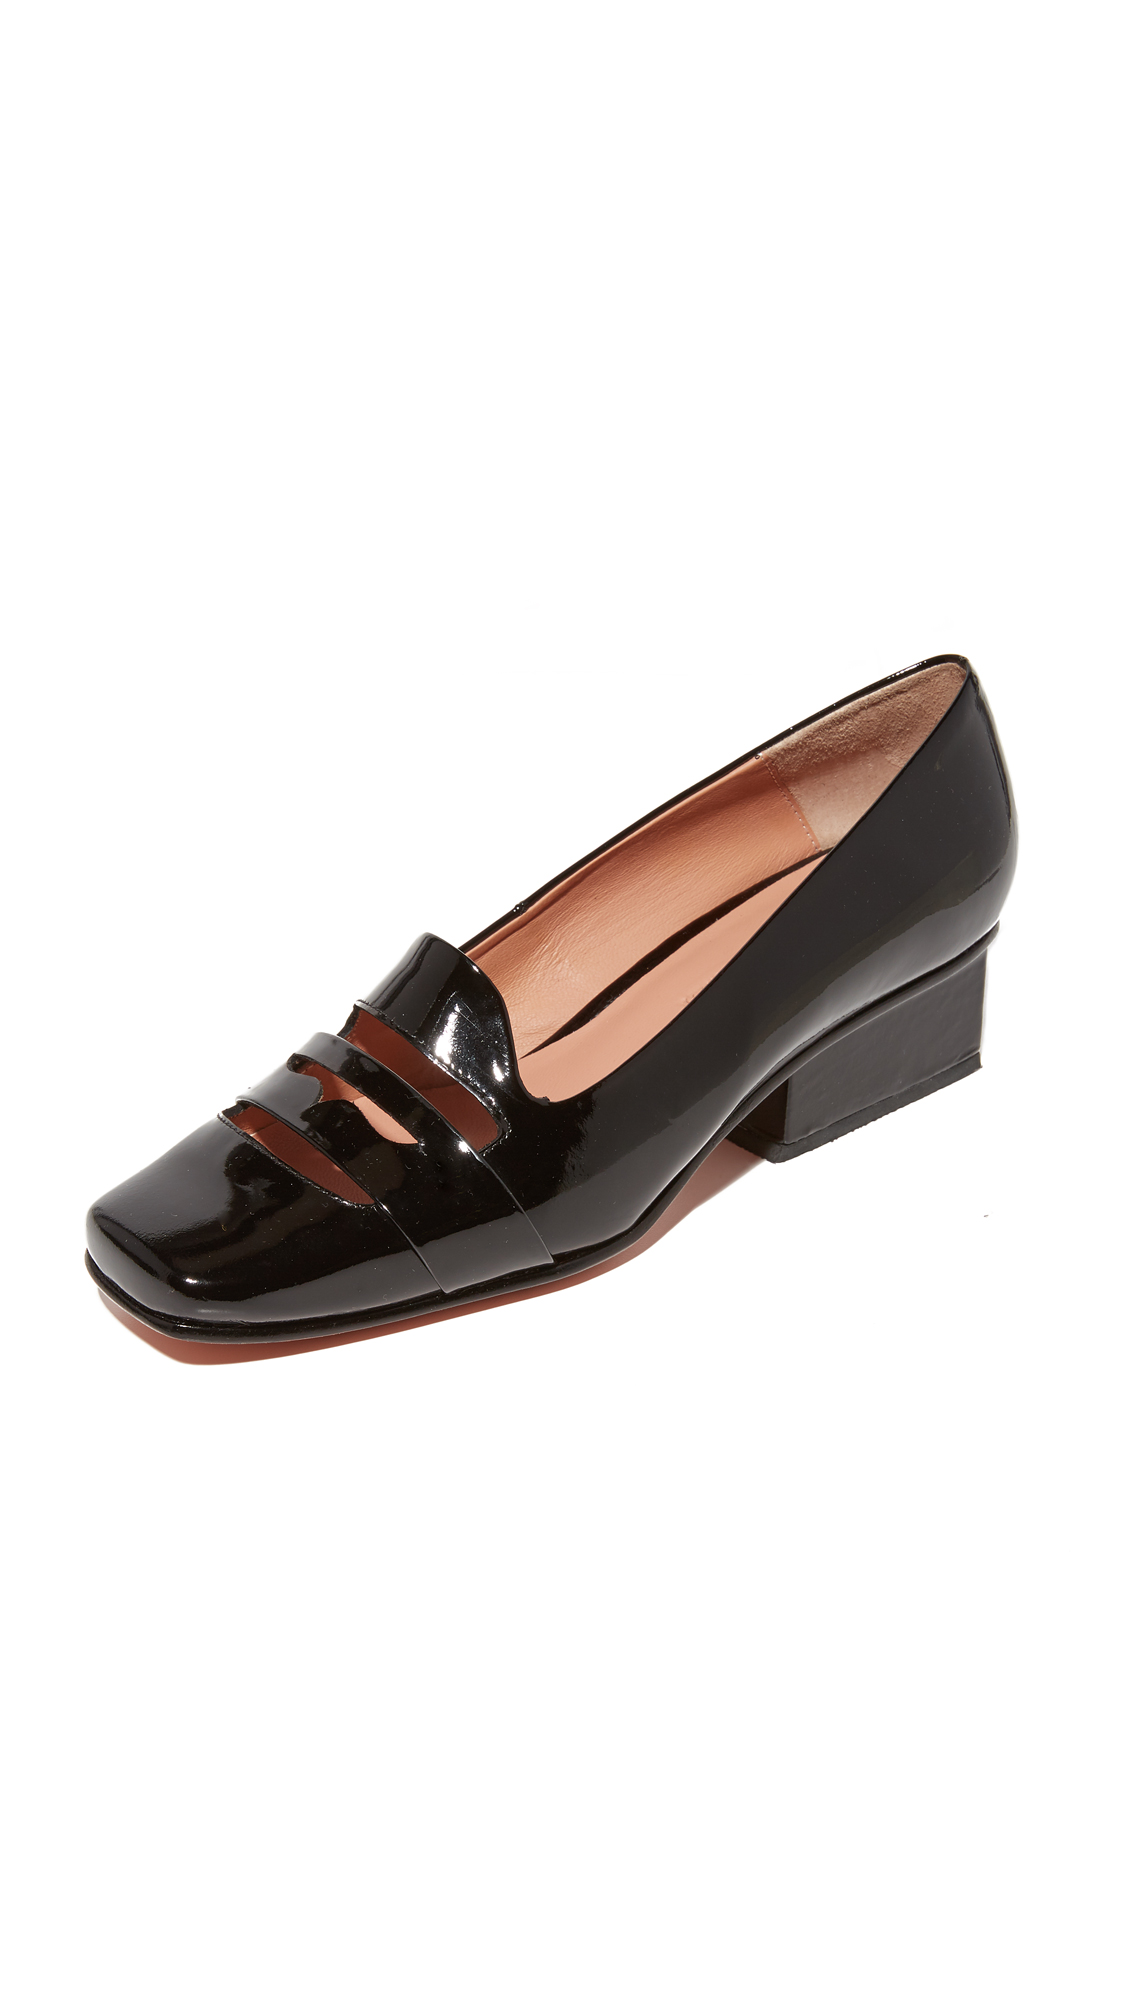 Rachel Comey Beacon Loafers - Black